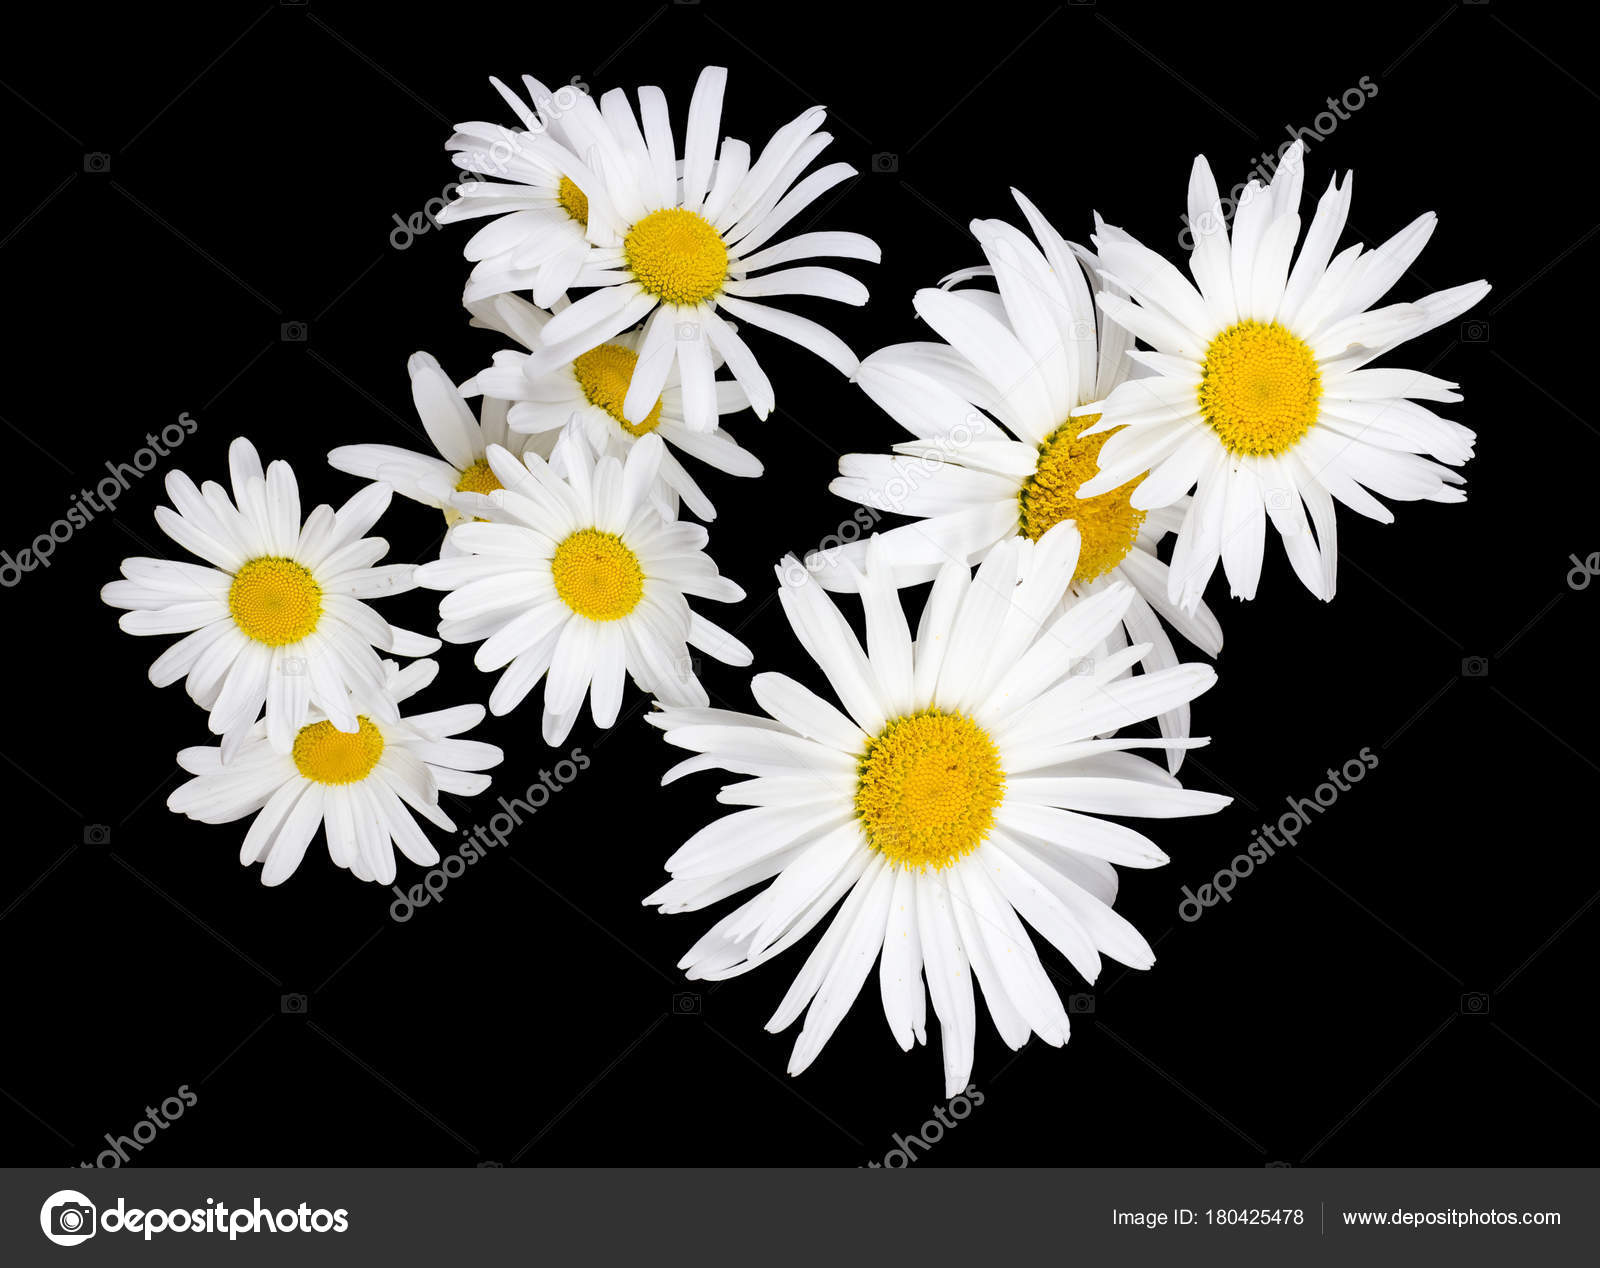 Large Flowers Of White Garden Camomiles Daisies Isolated On Blac